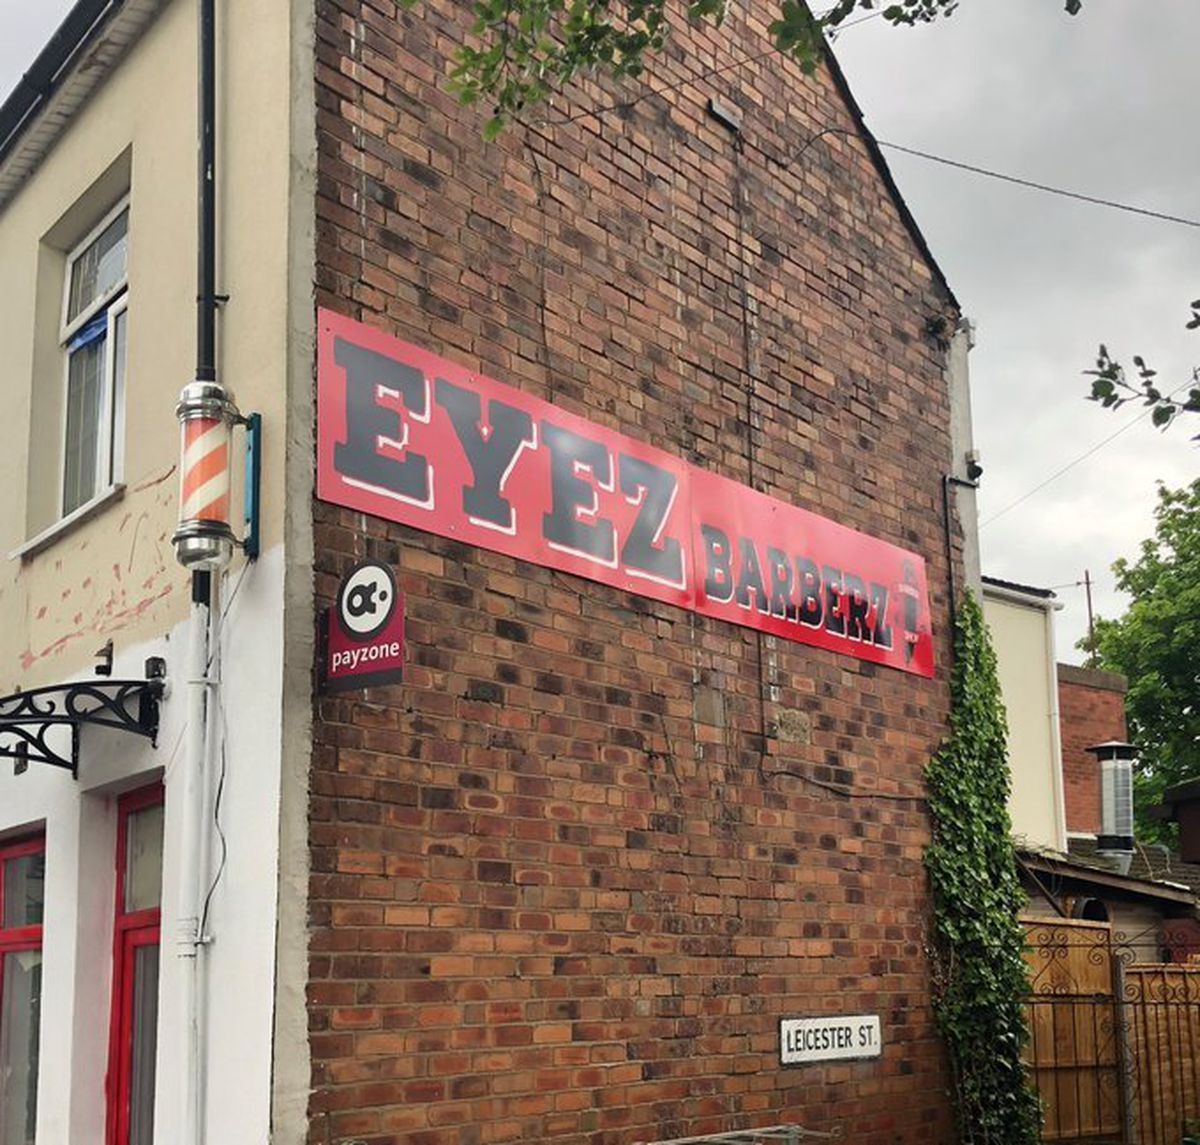 Eyez Barberz has been shut down after flouting Government rules